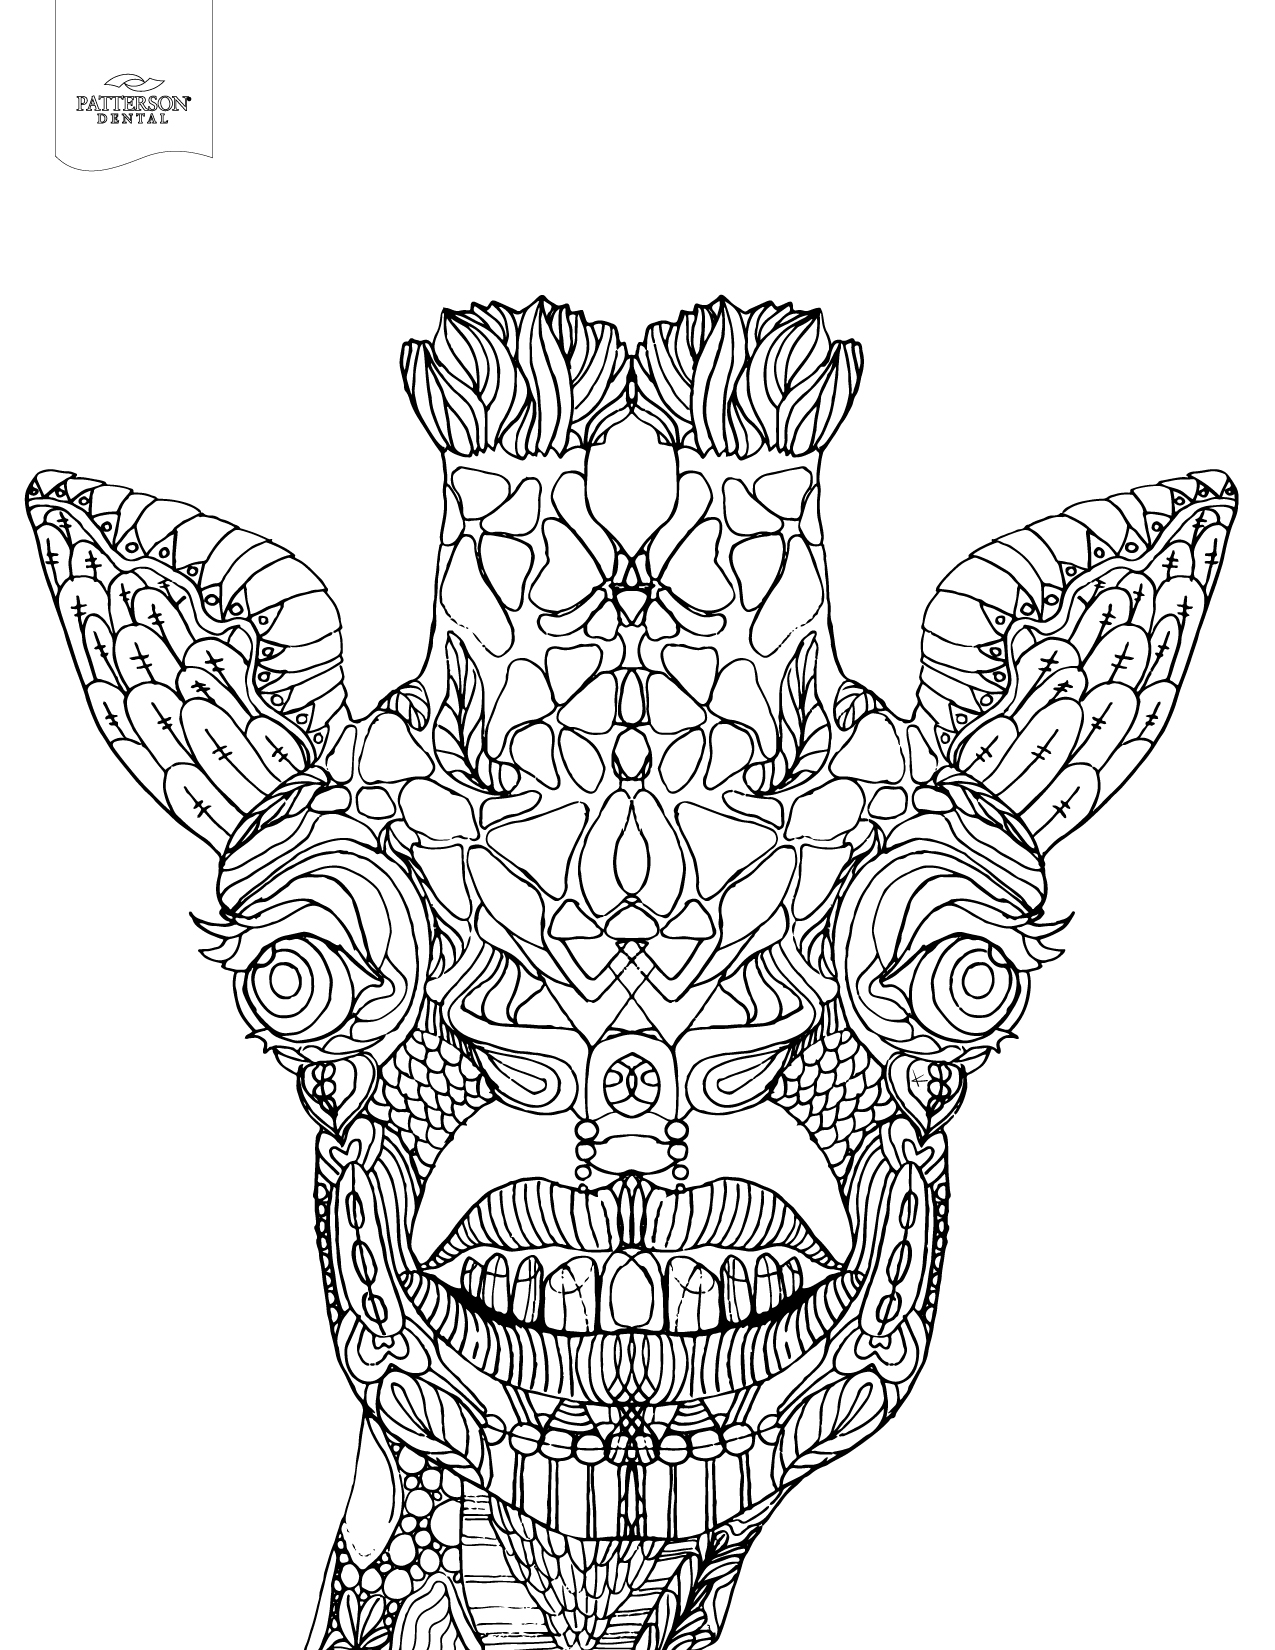 coloring printouts free printable tangled coloring pages for kids printouts coloring